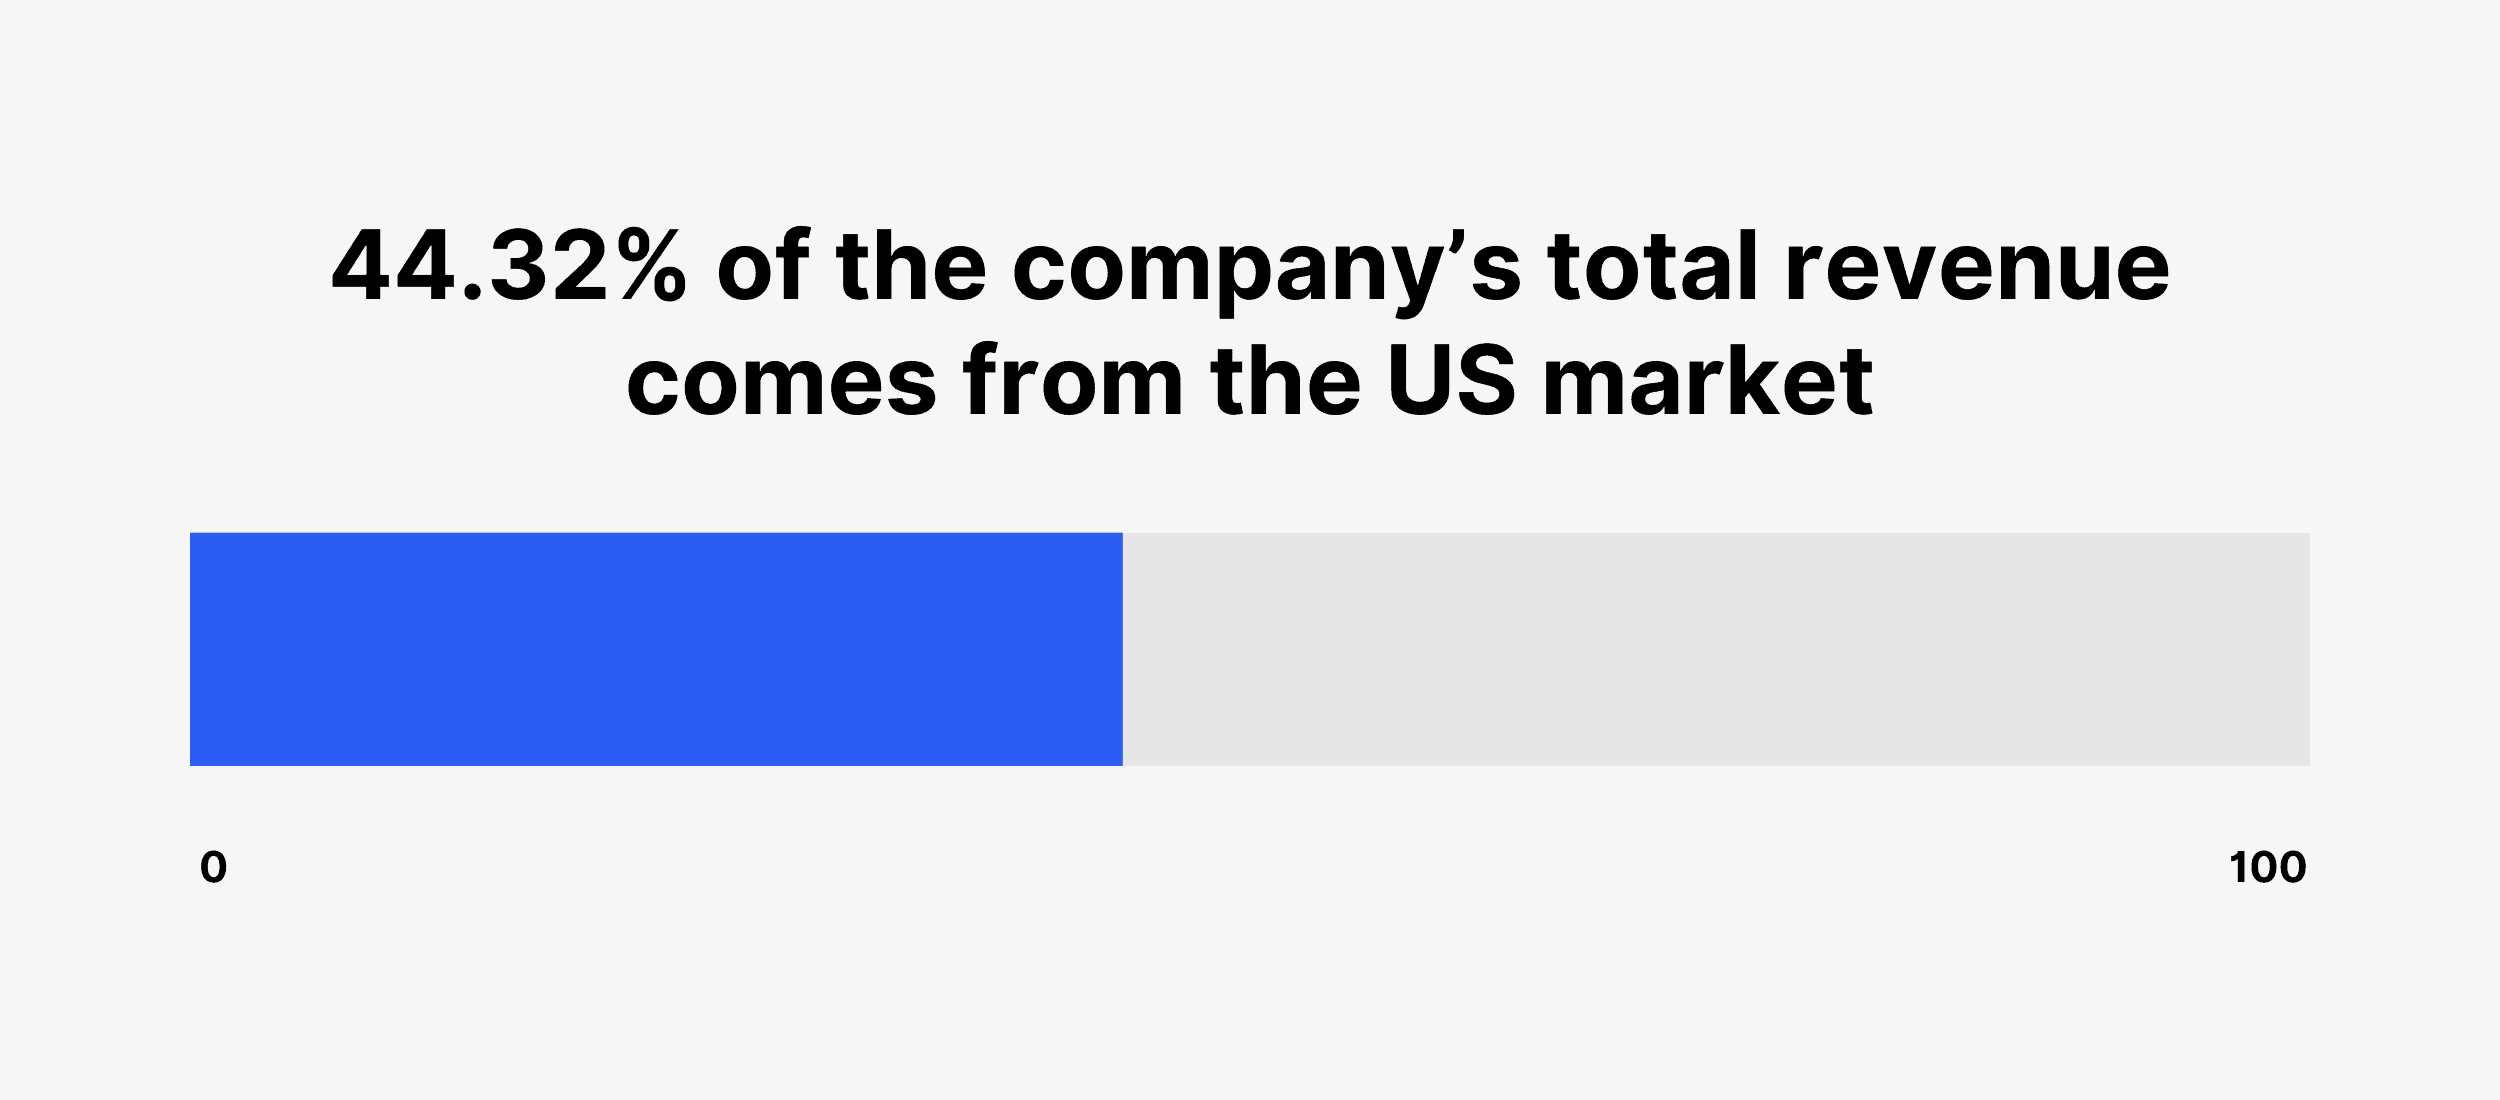 44.32% of the company's total revenue comes from the US market